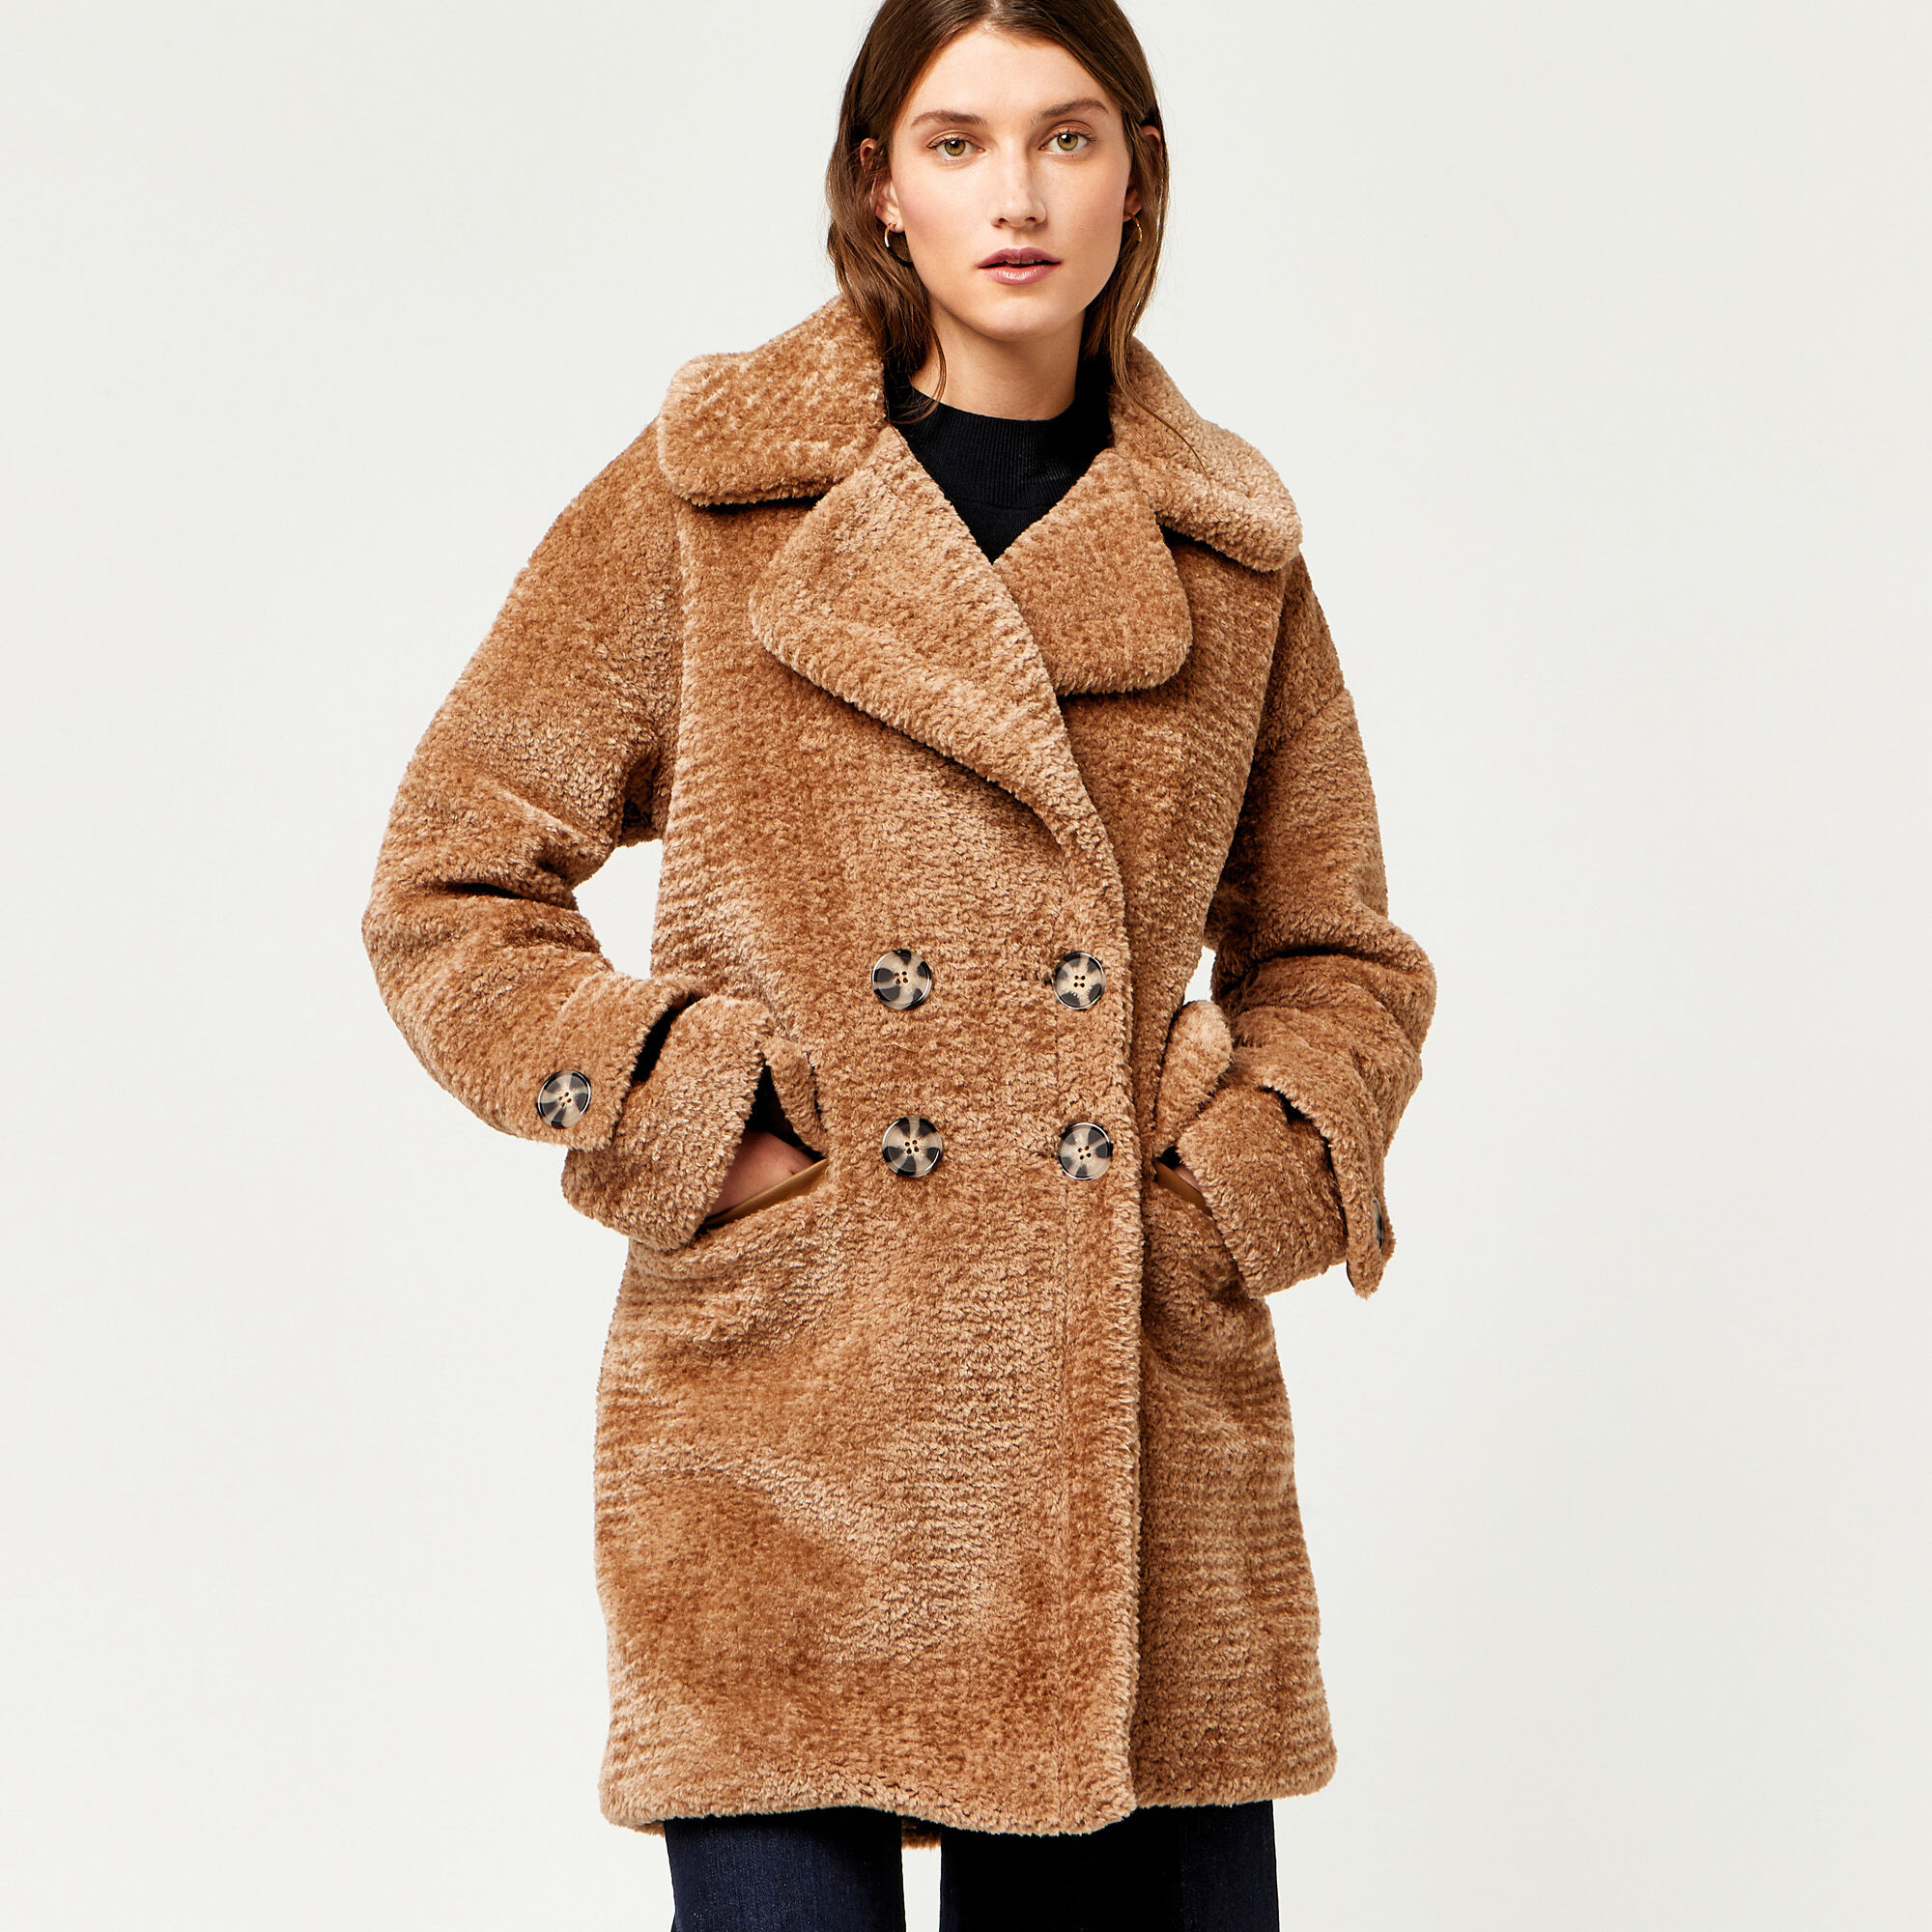 Warehouse, OVERSIZED TEDDY COAT Brown 1